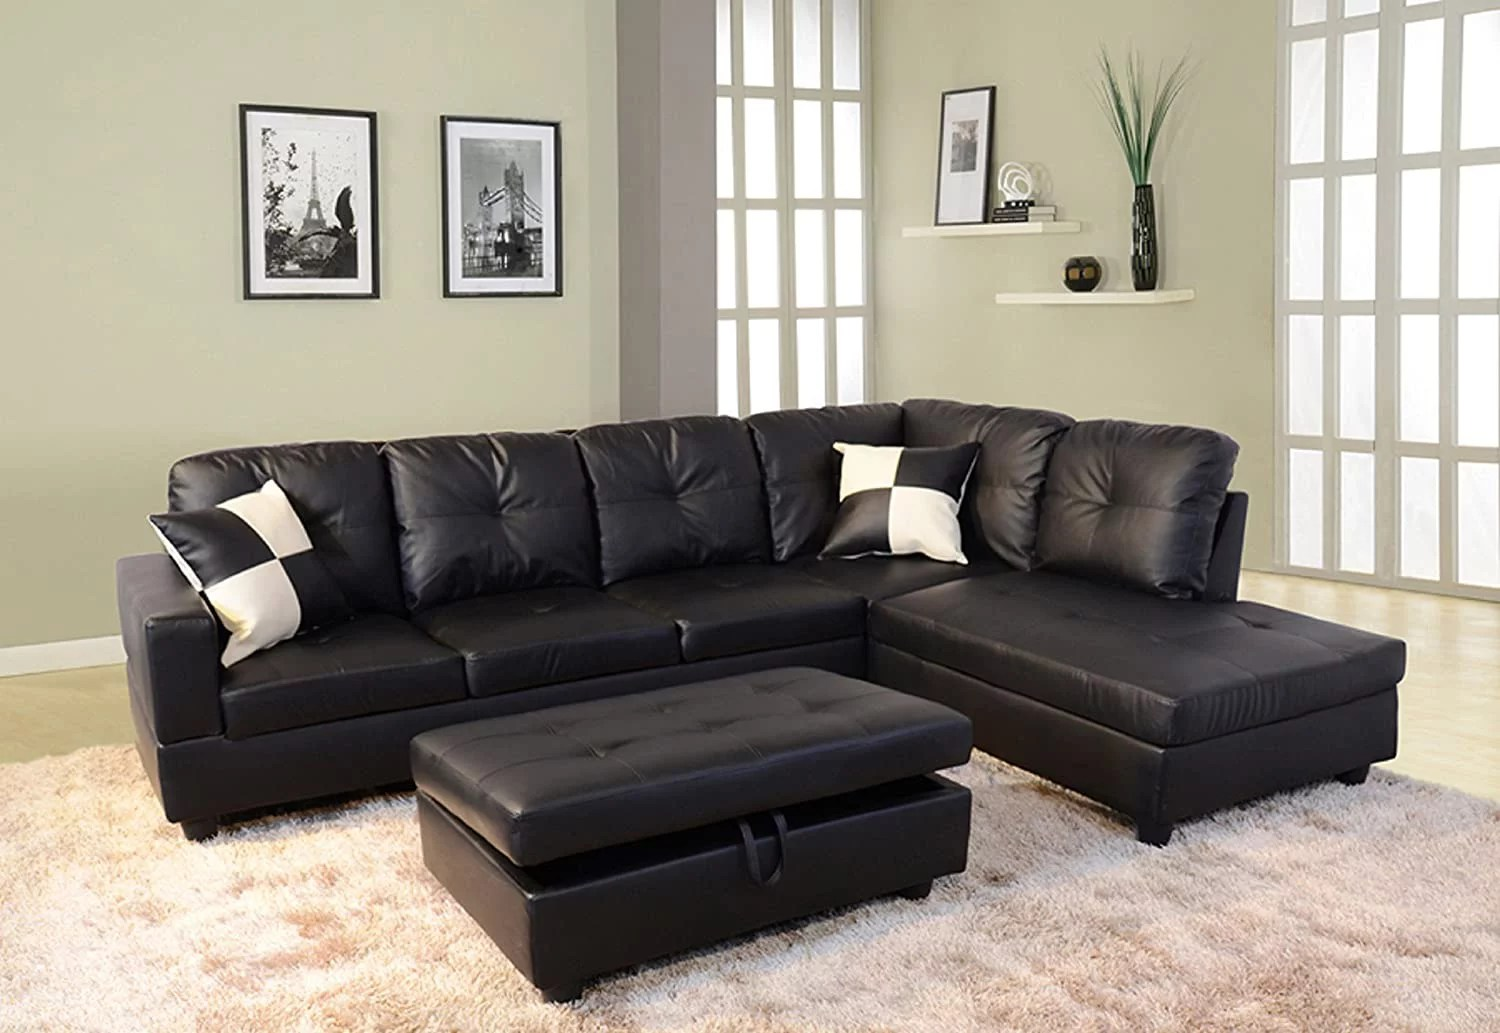 dae right facing sectional sofa l shape faux leather sectional sofa couch set for living room furniture